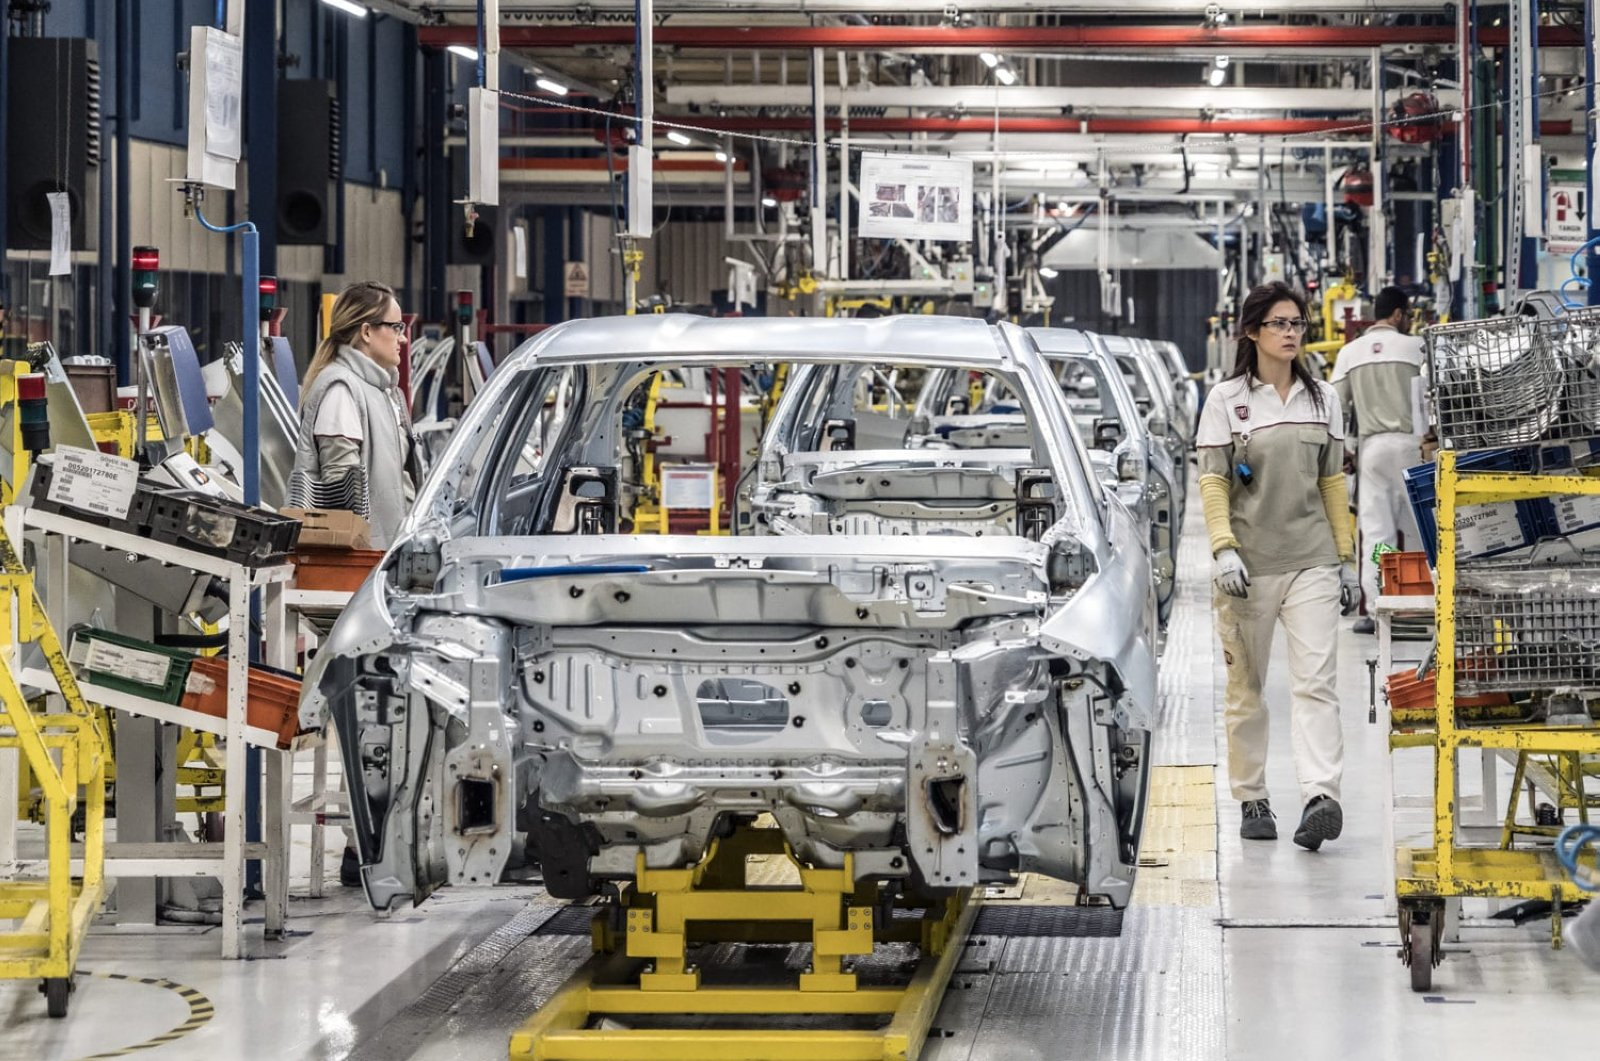 Cars are seen being assembled in the Bursa factory of Tofaş, a joint venture of Turkey's Koç Holding and Italian-American carmaker Fiat Chrysler, Bursa, Turkey, March 31, 2020. (AA Photo)